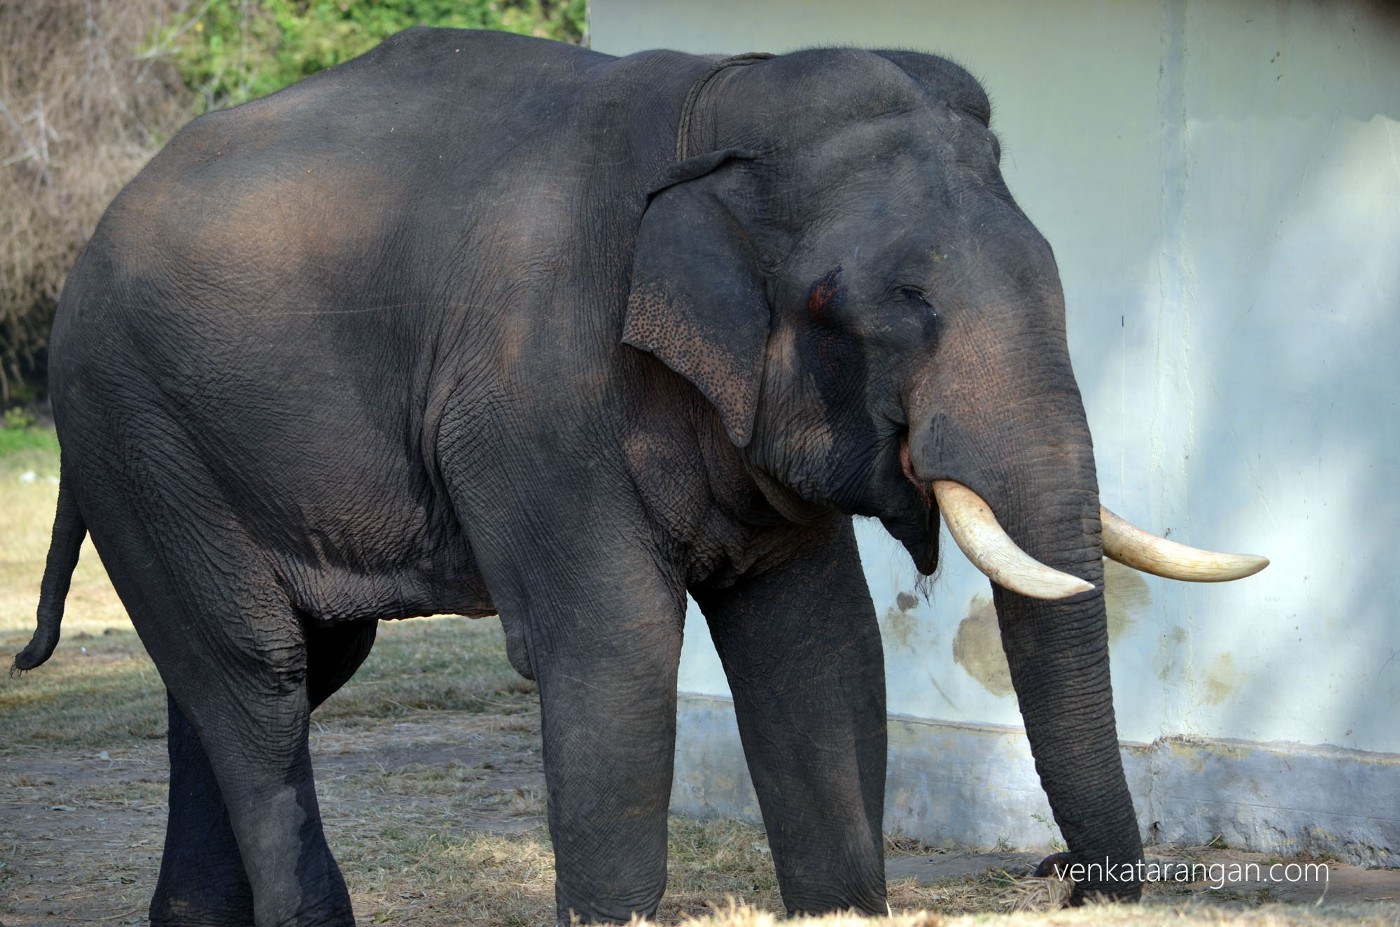 Young elephant at the santcuary run by the Bandipur forest department